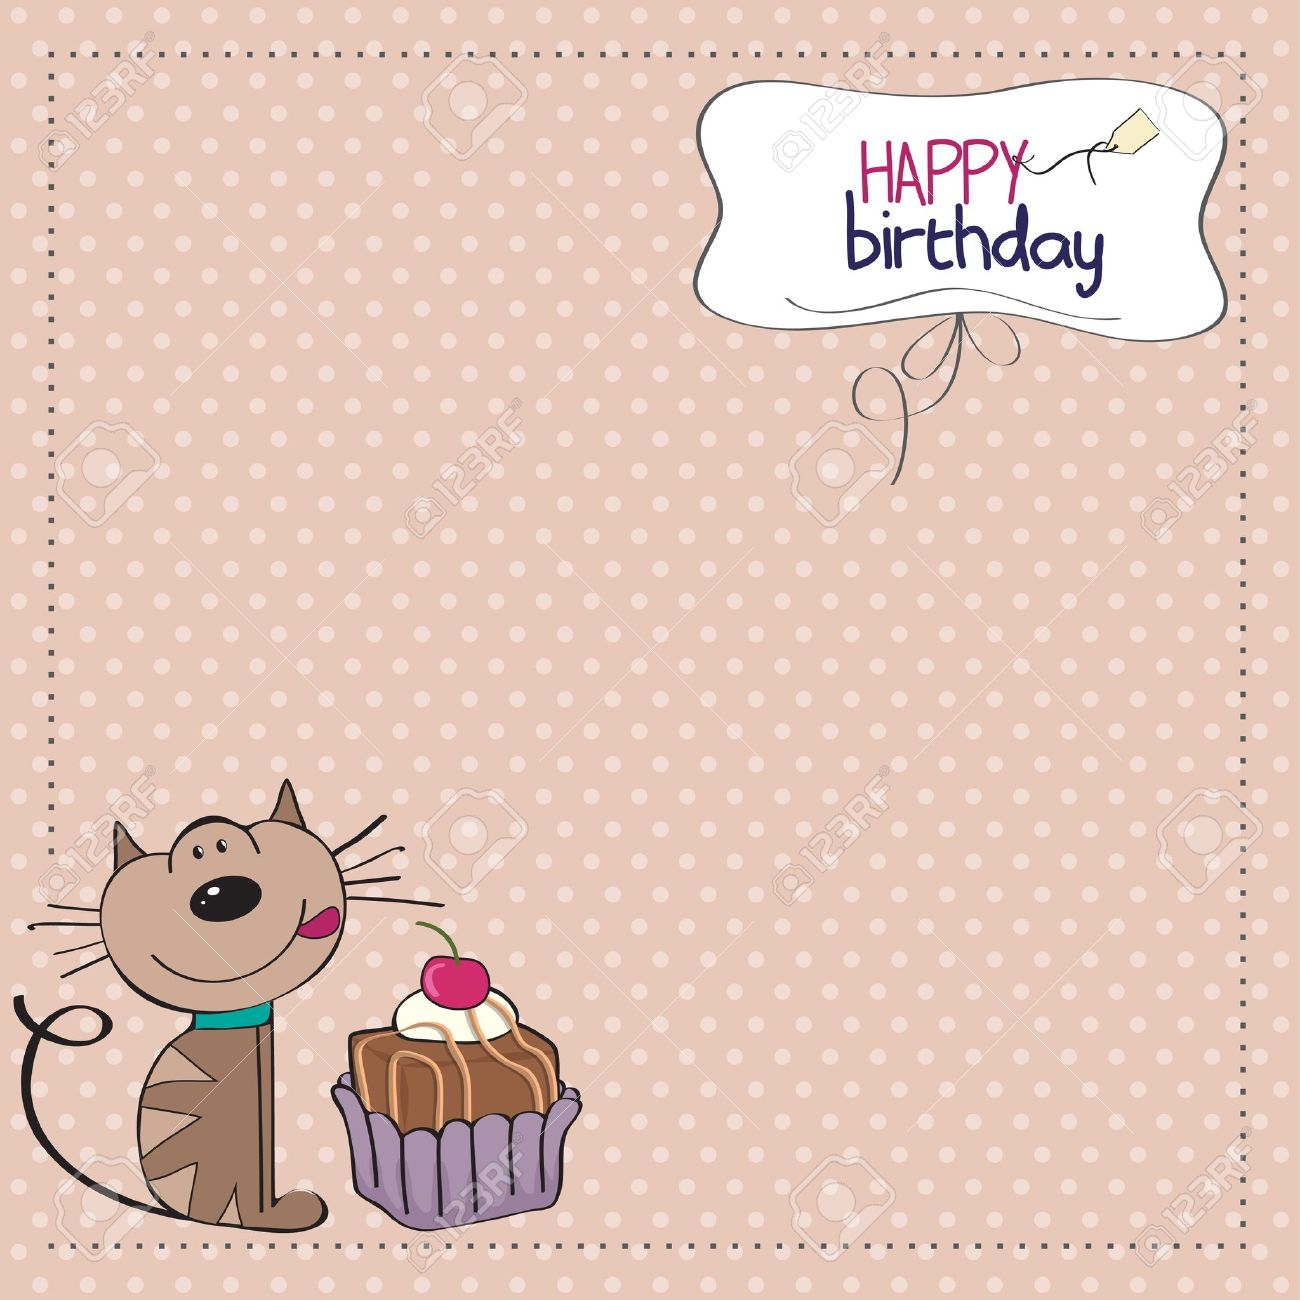 birthday greeting card with a cat waiting to eat a cake Stock Vector - 12816045